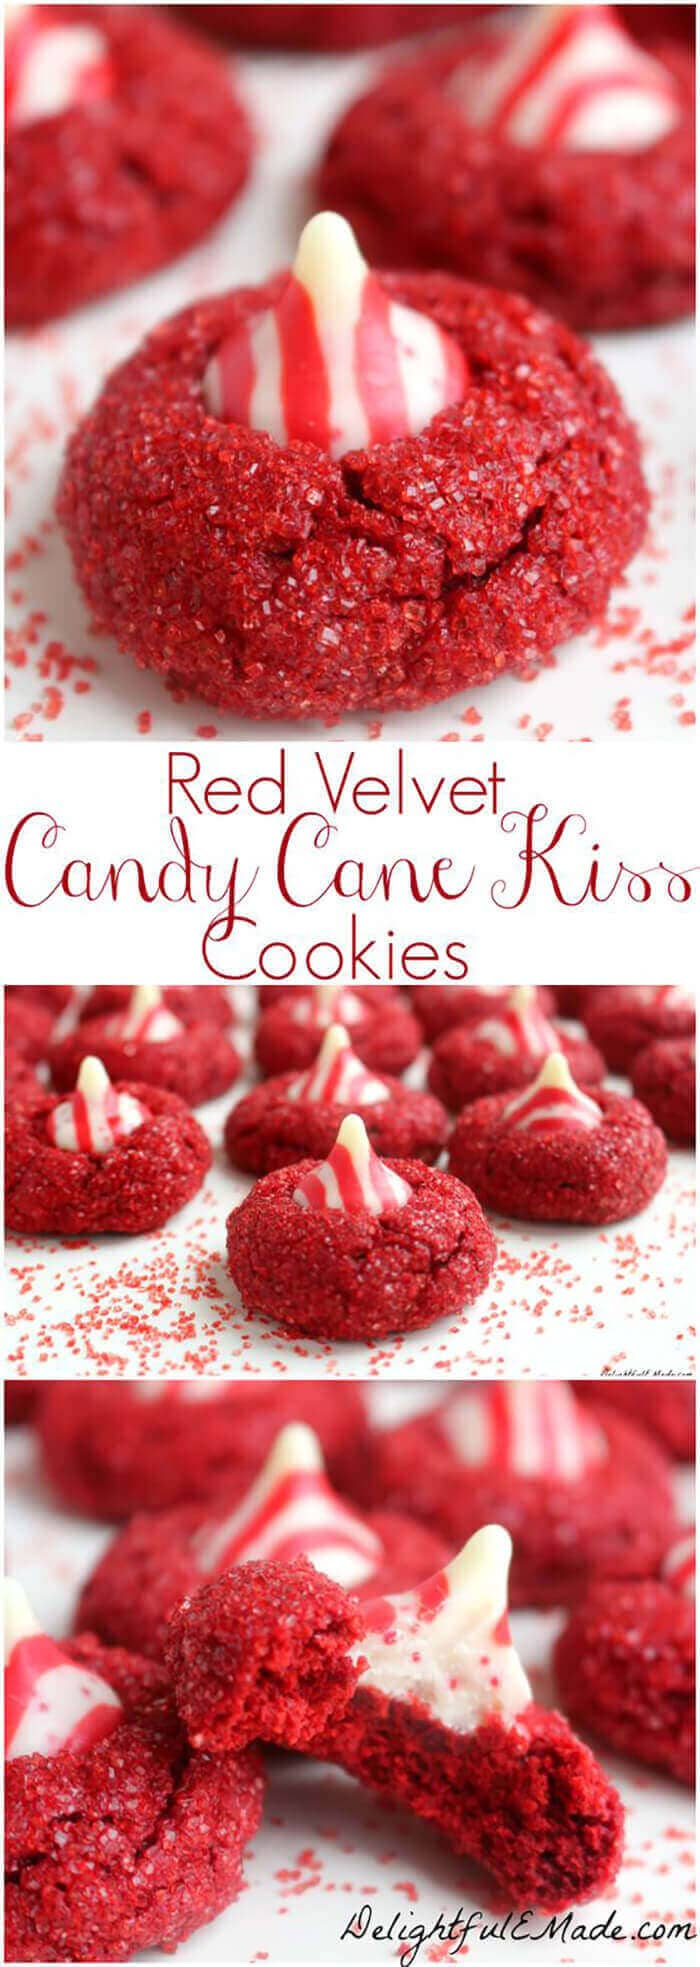 25 Valentine's Day Dessert Recipes to Make for your Love